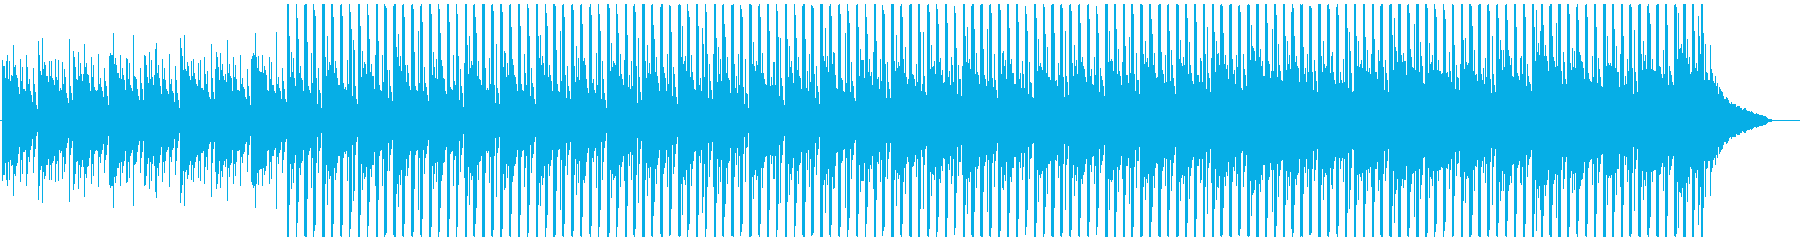 Announcement and corporate VP! Light, clean and secure M's reproduced waveform